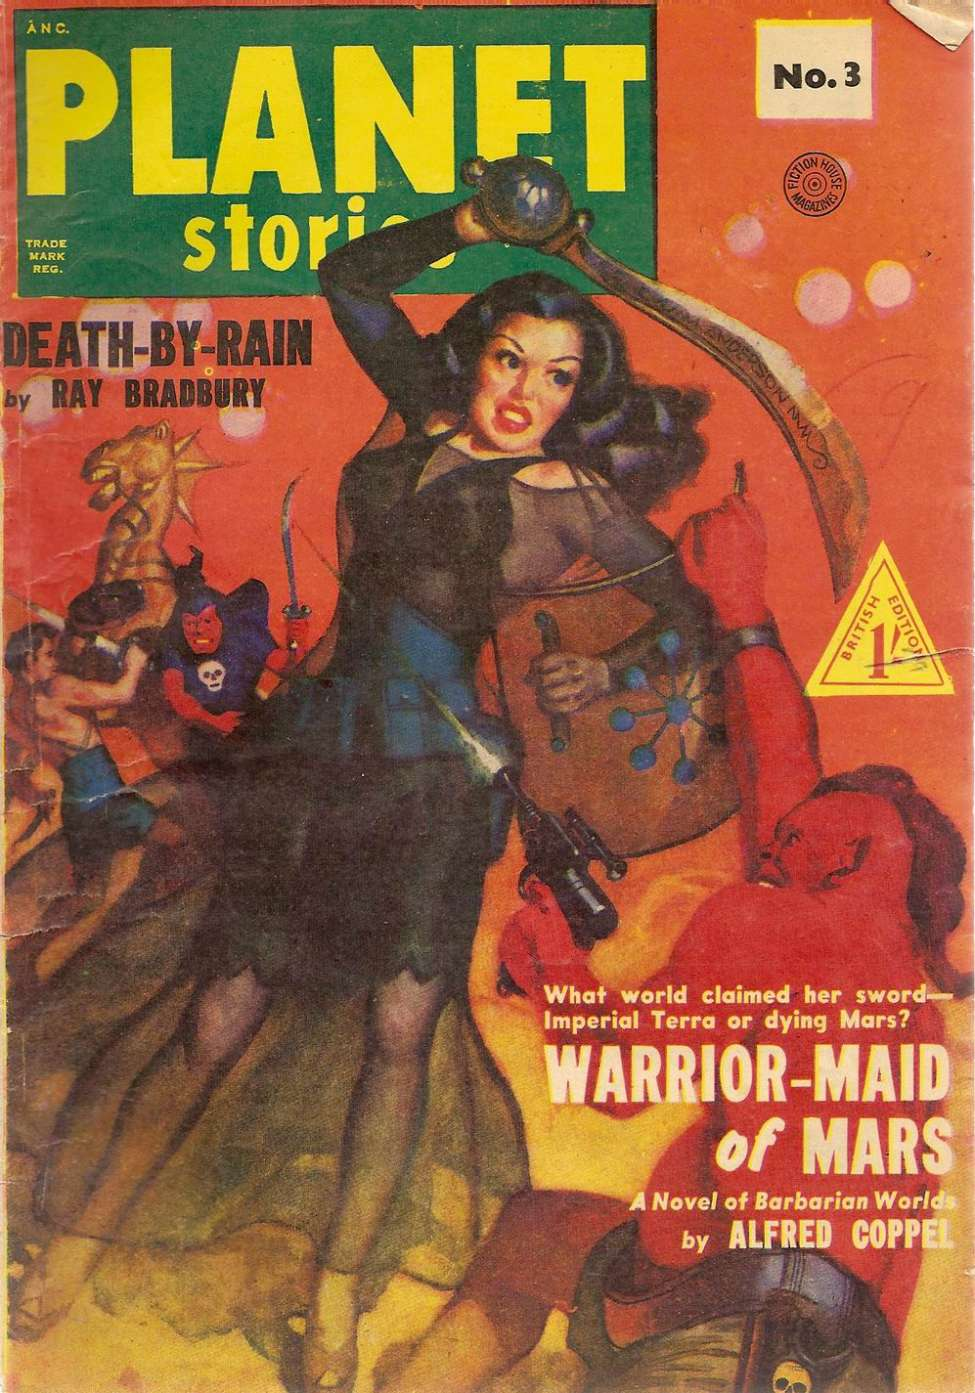 Comic Book Cover For Planet Stories (UK) 03 - Death-by-Rain - Ray Bradbury